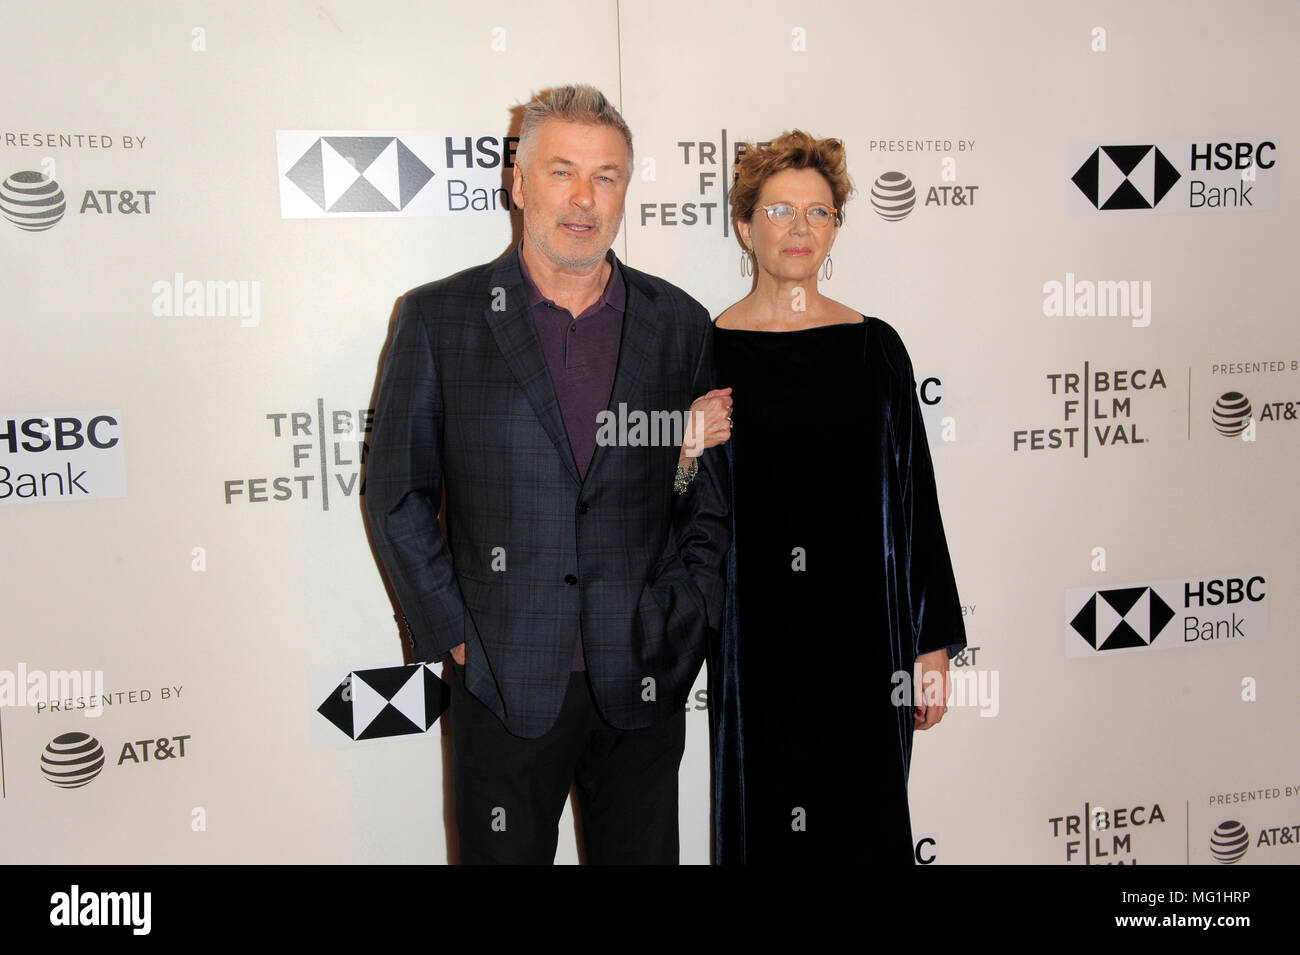 NEW YORK, NY - APRIL 21: Actors Alec Baldwin and Annette Bening attend the premiere of 'The Seagull' during the 2018 Tribeca Film Festival at BMCC Tri Stock Photo